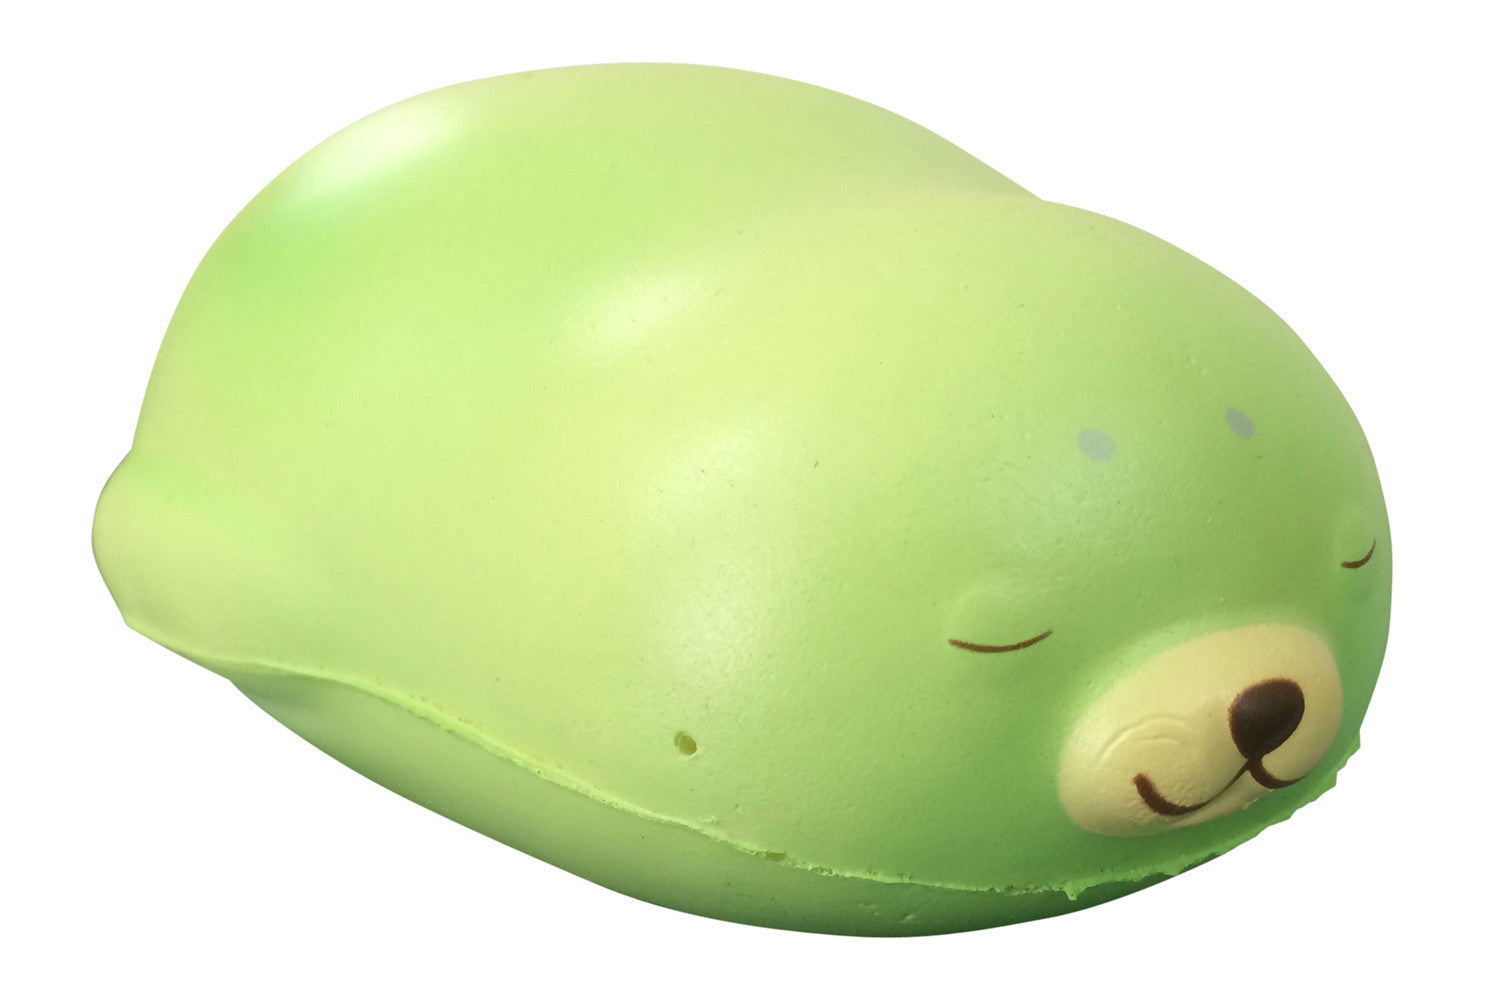 Puni Maru JUMBO Mochi Seal! Scented! RESTOCK ON GREEN MELON!